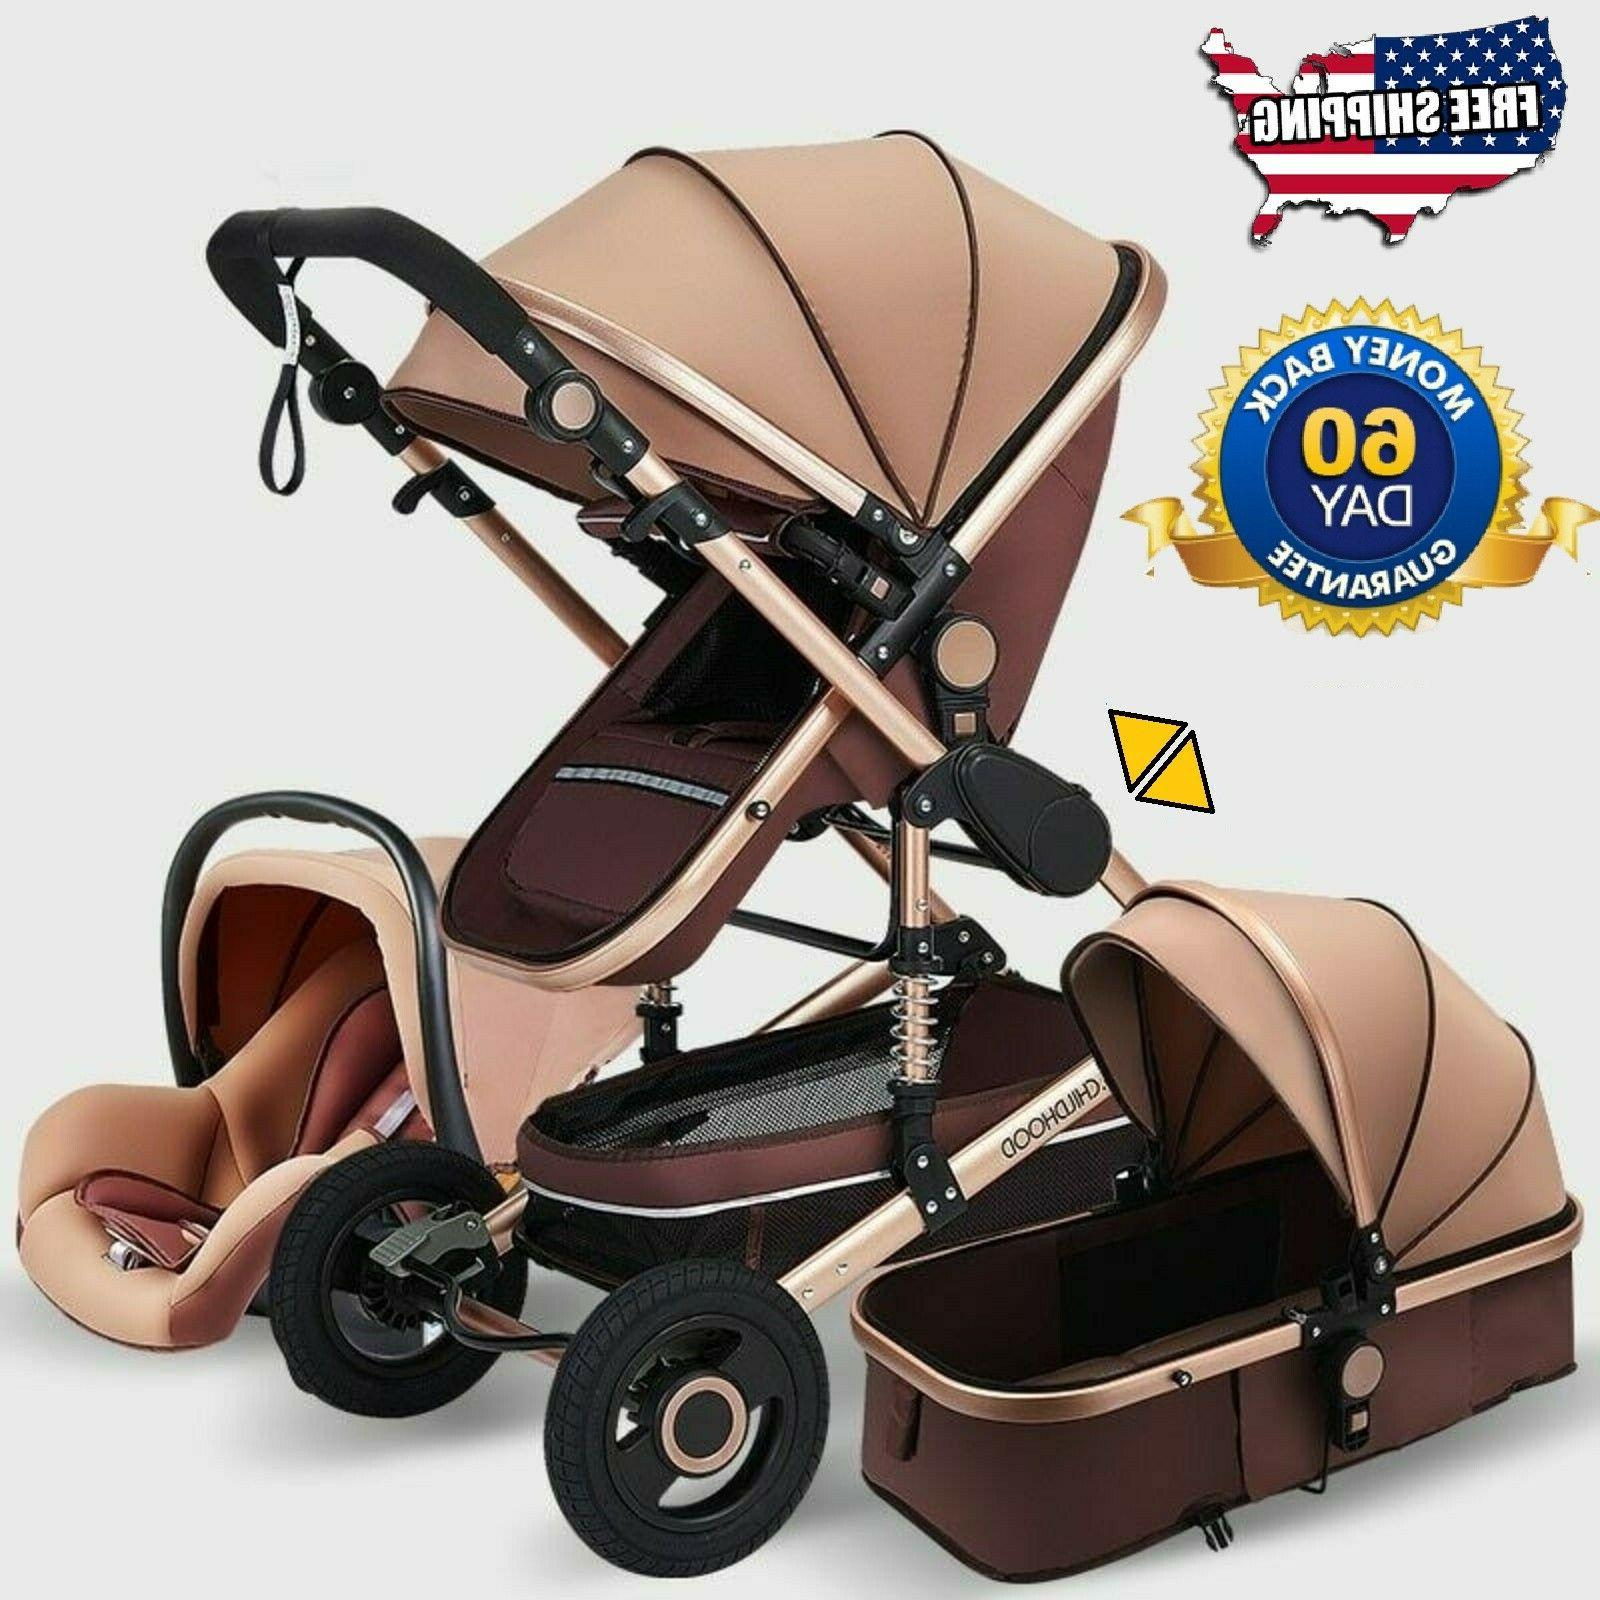 premium 3 in 1 baby carriage stroller